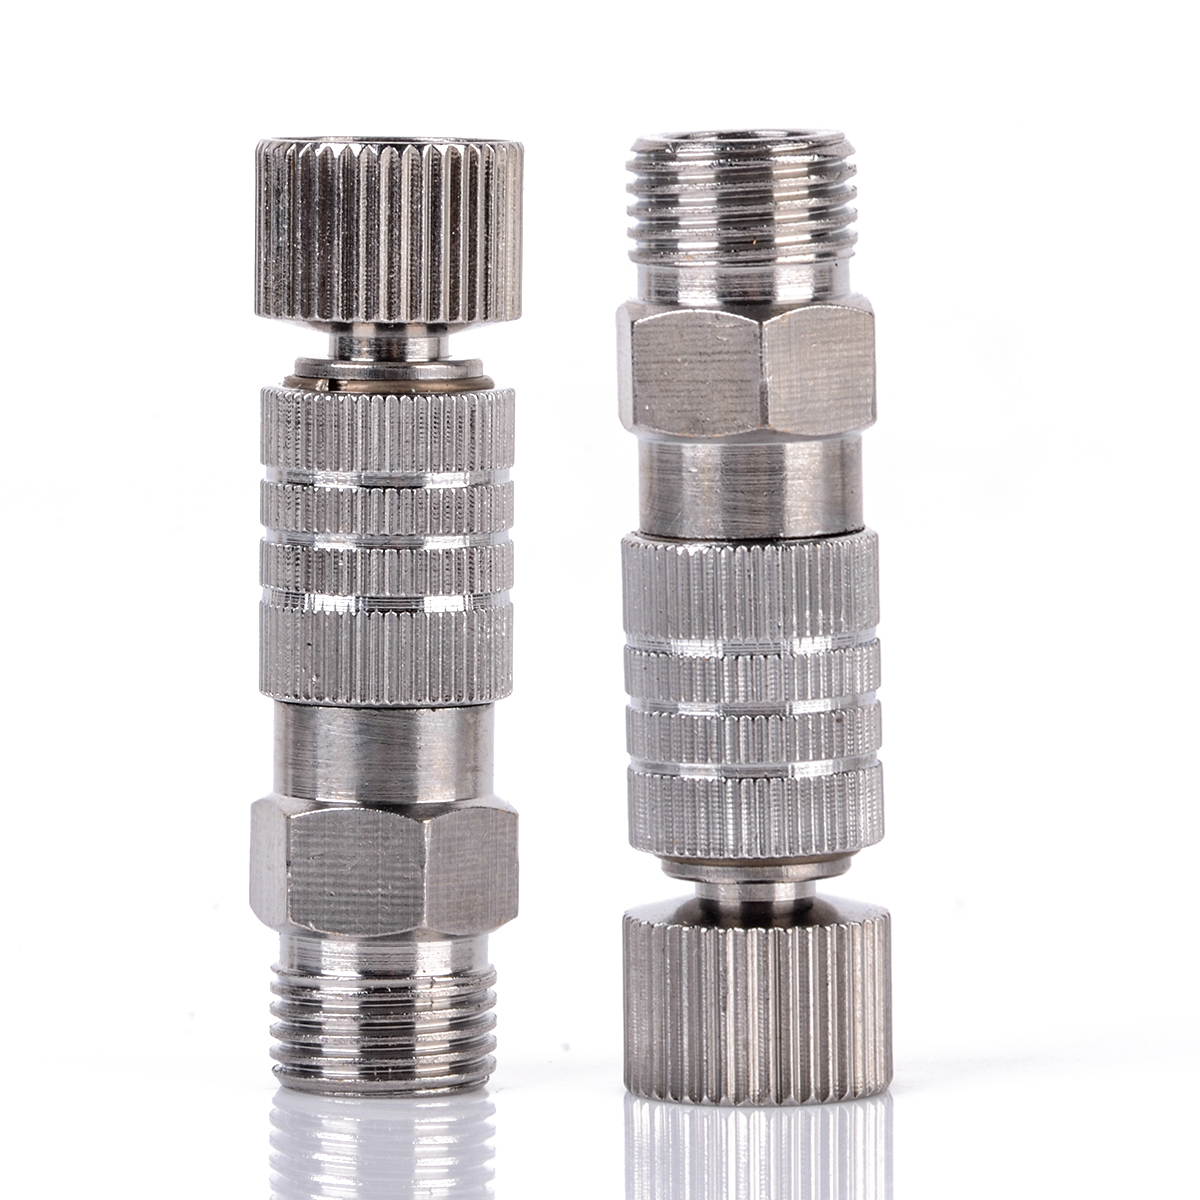 Mayitr 1/8inch Airbrush Quick Release Adaptor Durable Metal Coupler Fitting Coupling Connector 4x1x0.8cm